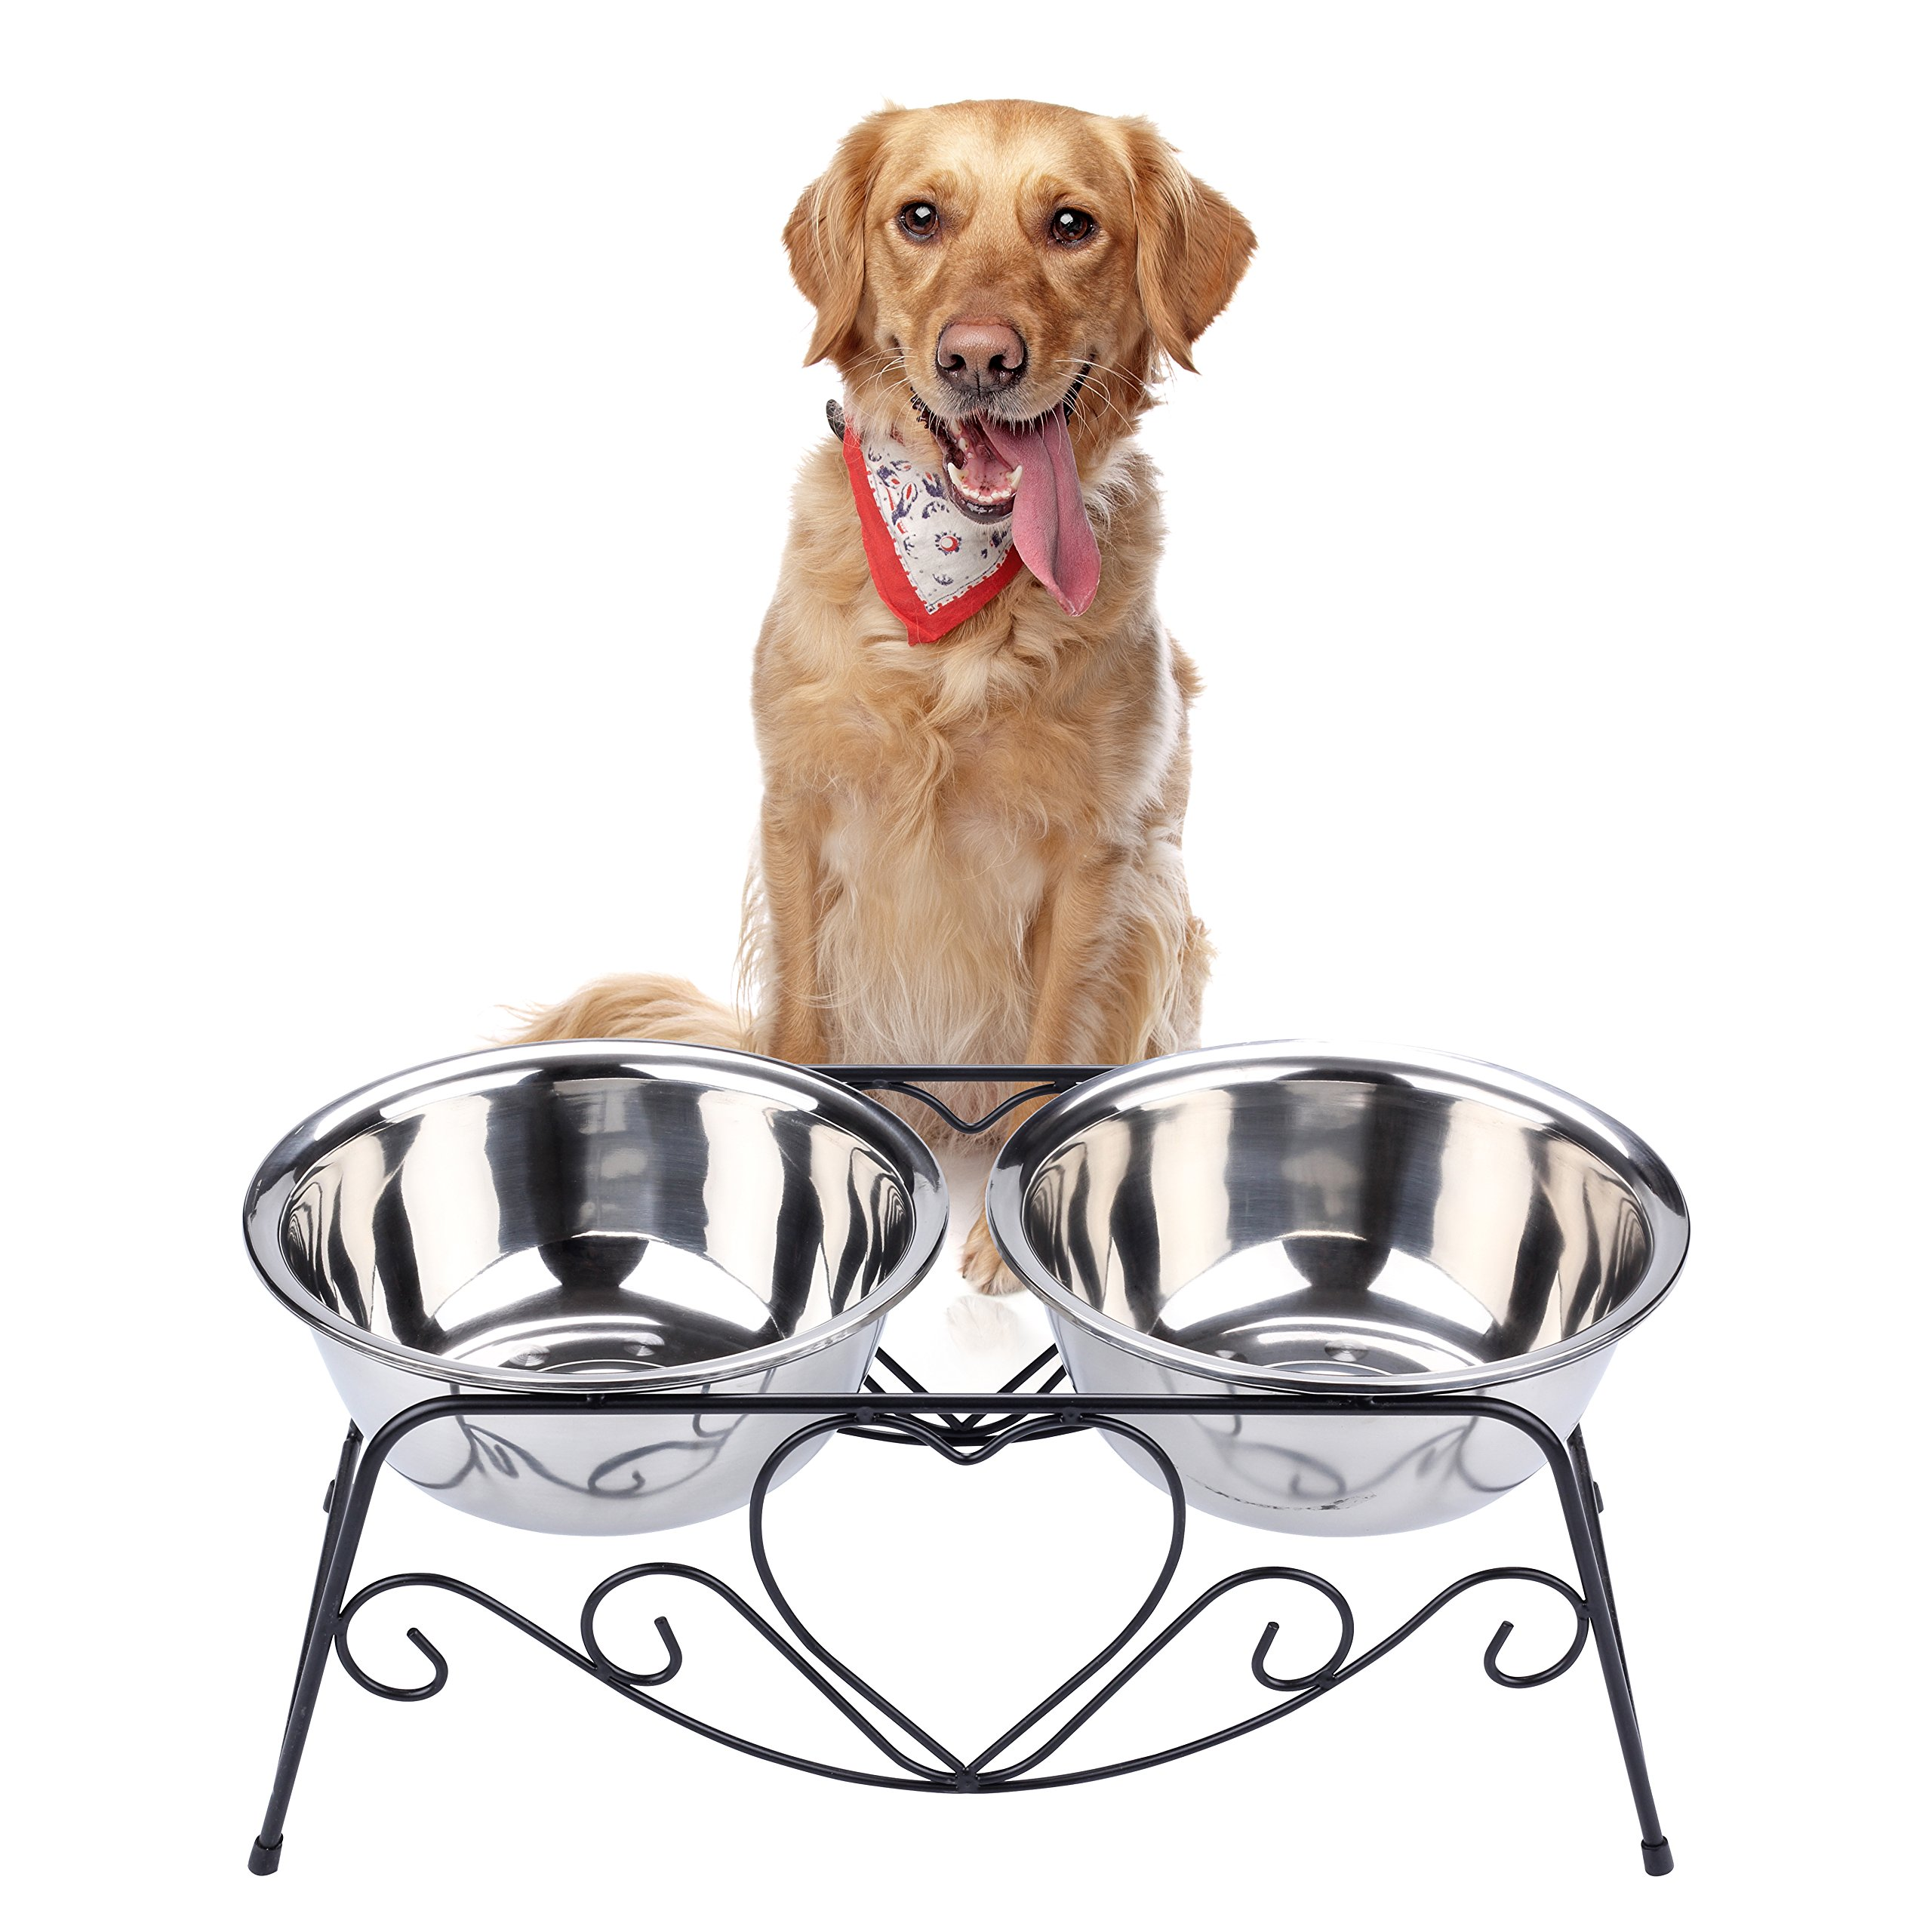 VIVIKO Pet Feeder for Dog Cat, Stainless Steel Food and Water Bowls with Iron Stand (Large)